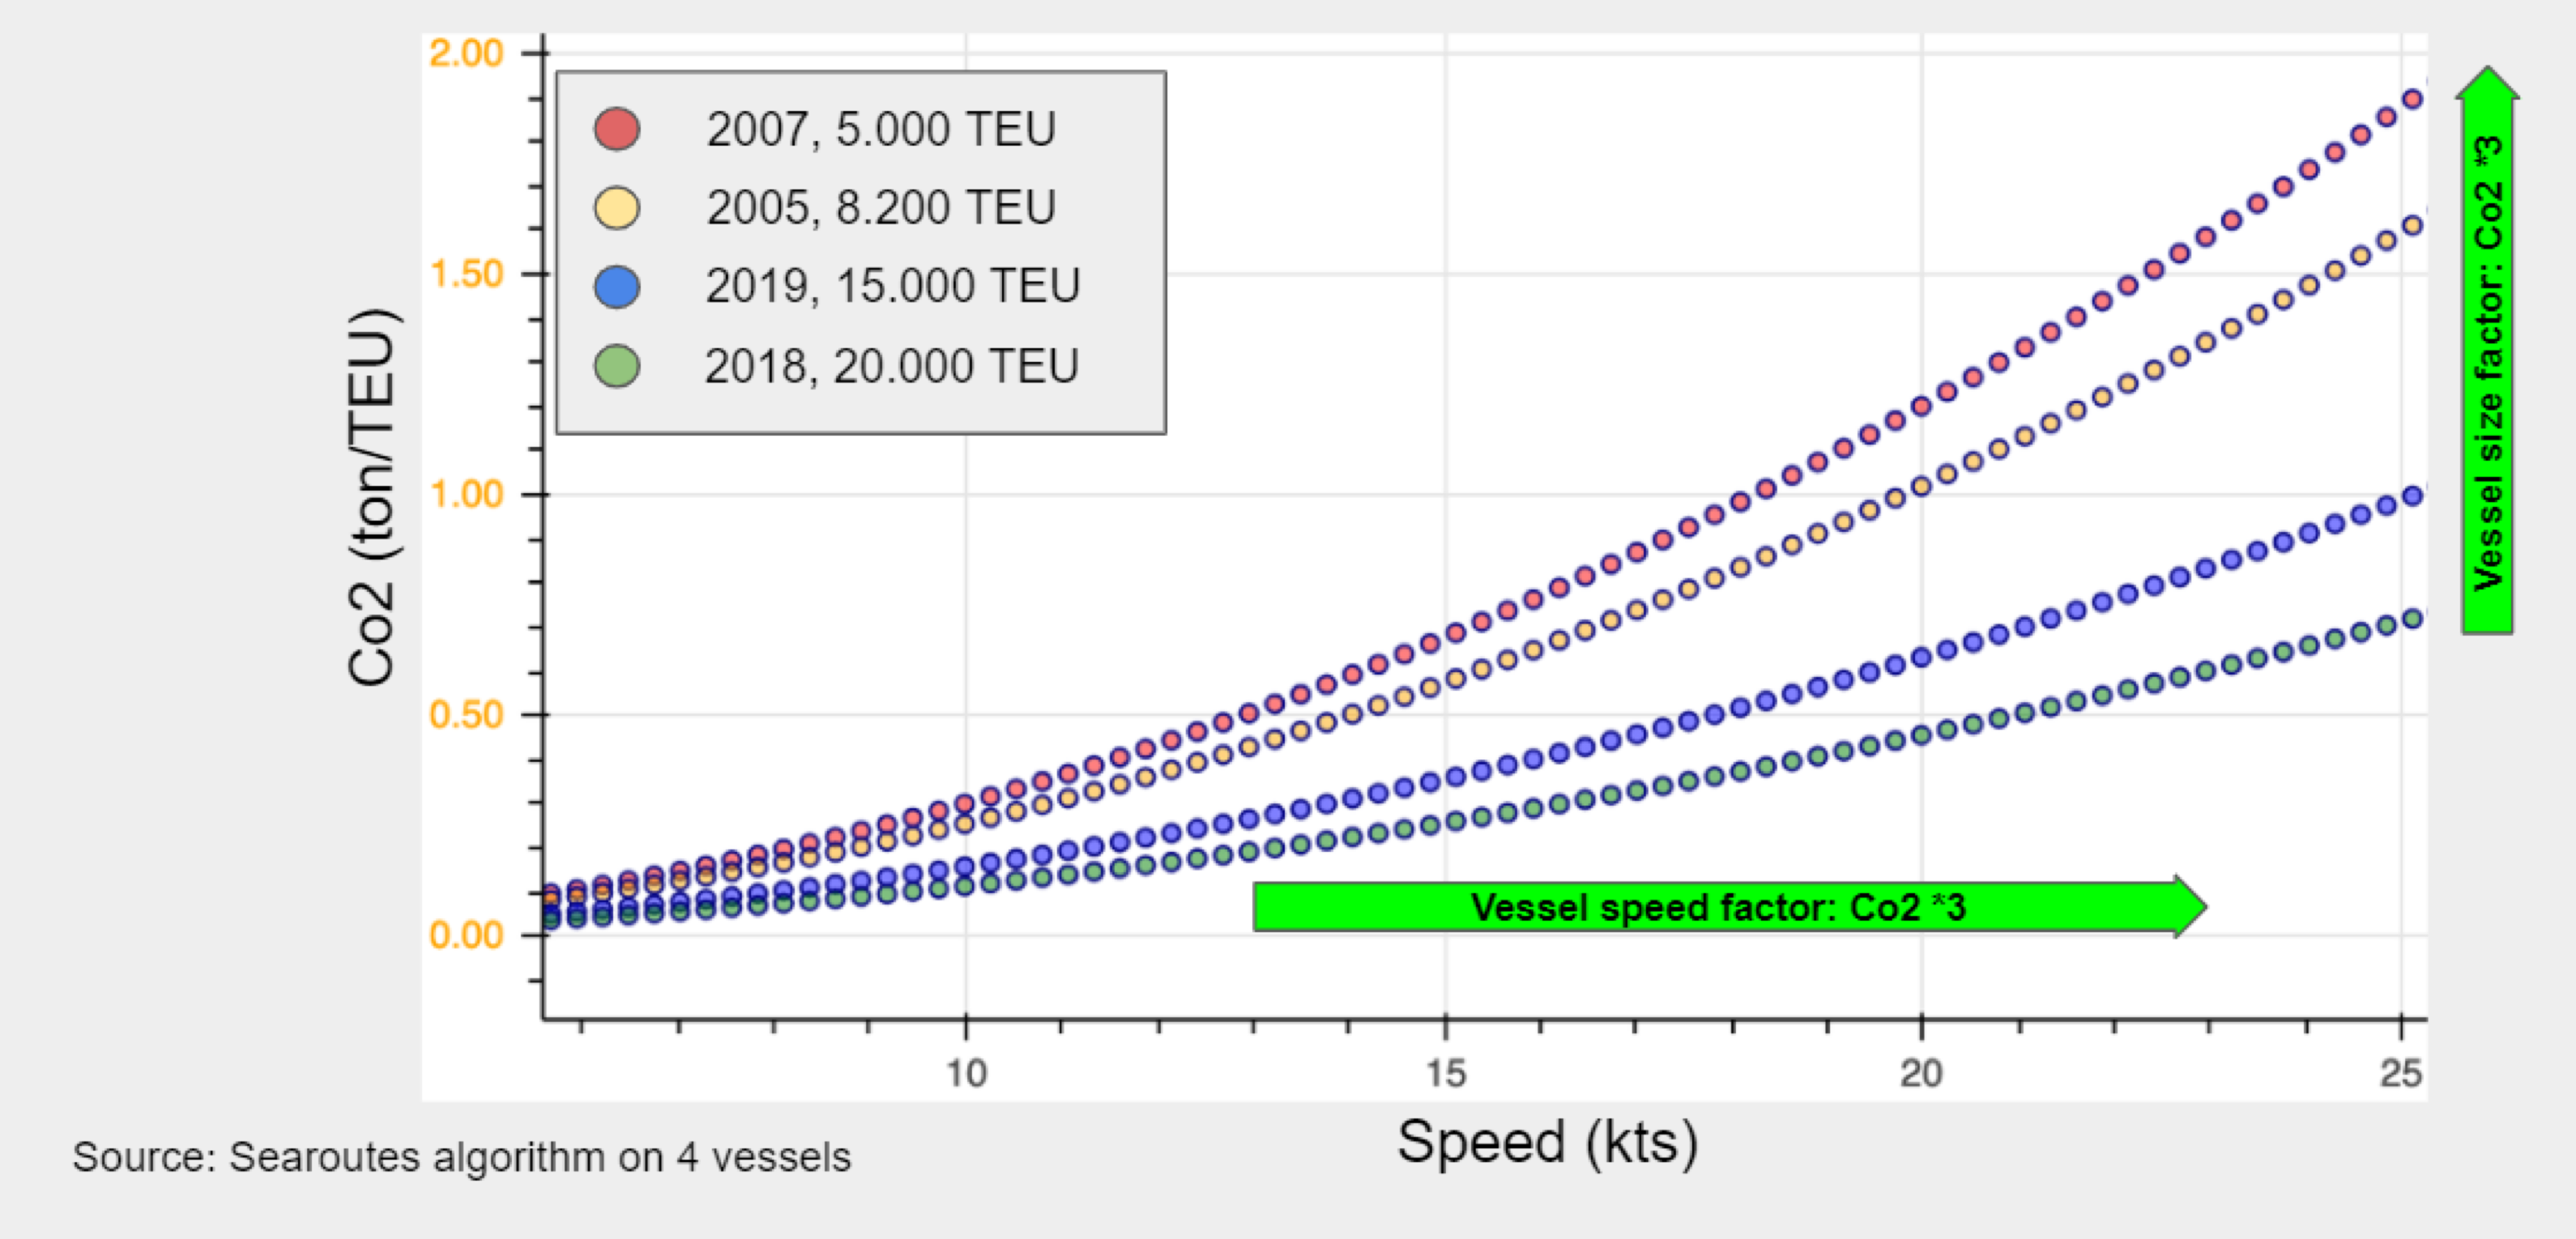 Global sea freight represents 2% of CO2 emissions, but CO2 performance can vary by x5 depending on vessel and carrier speed policies.